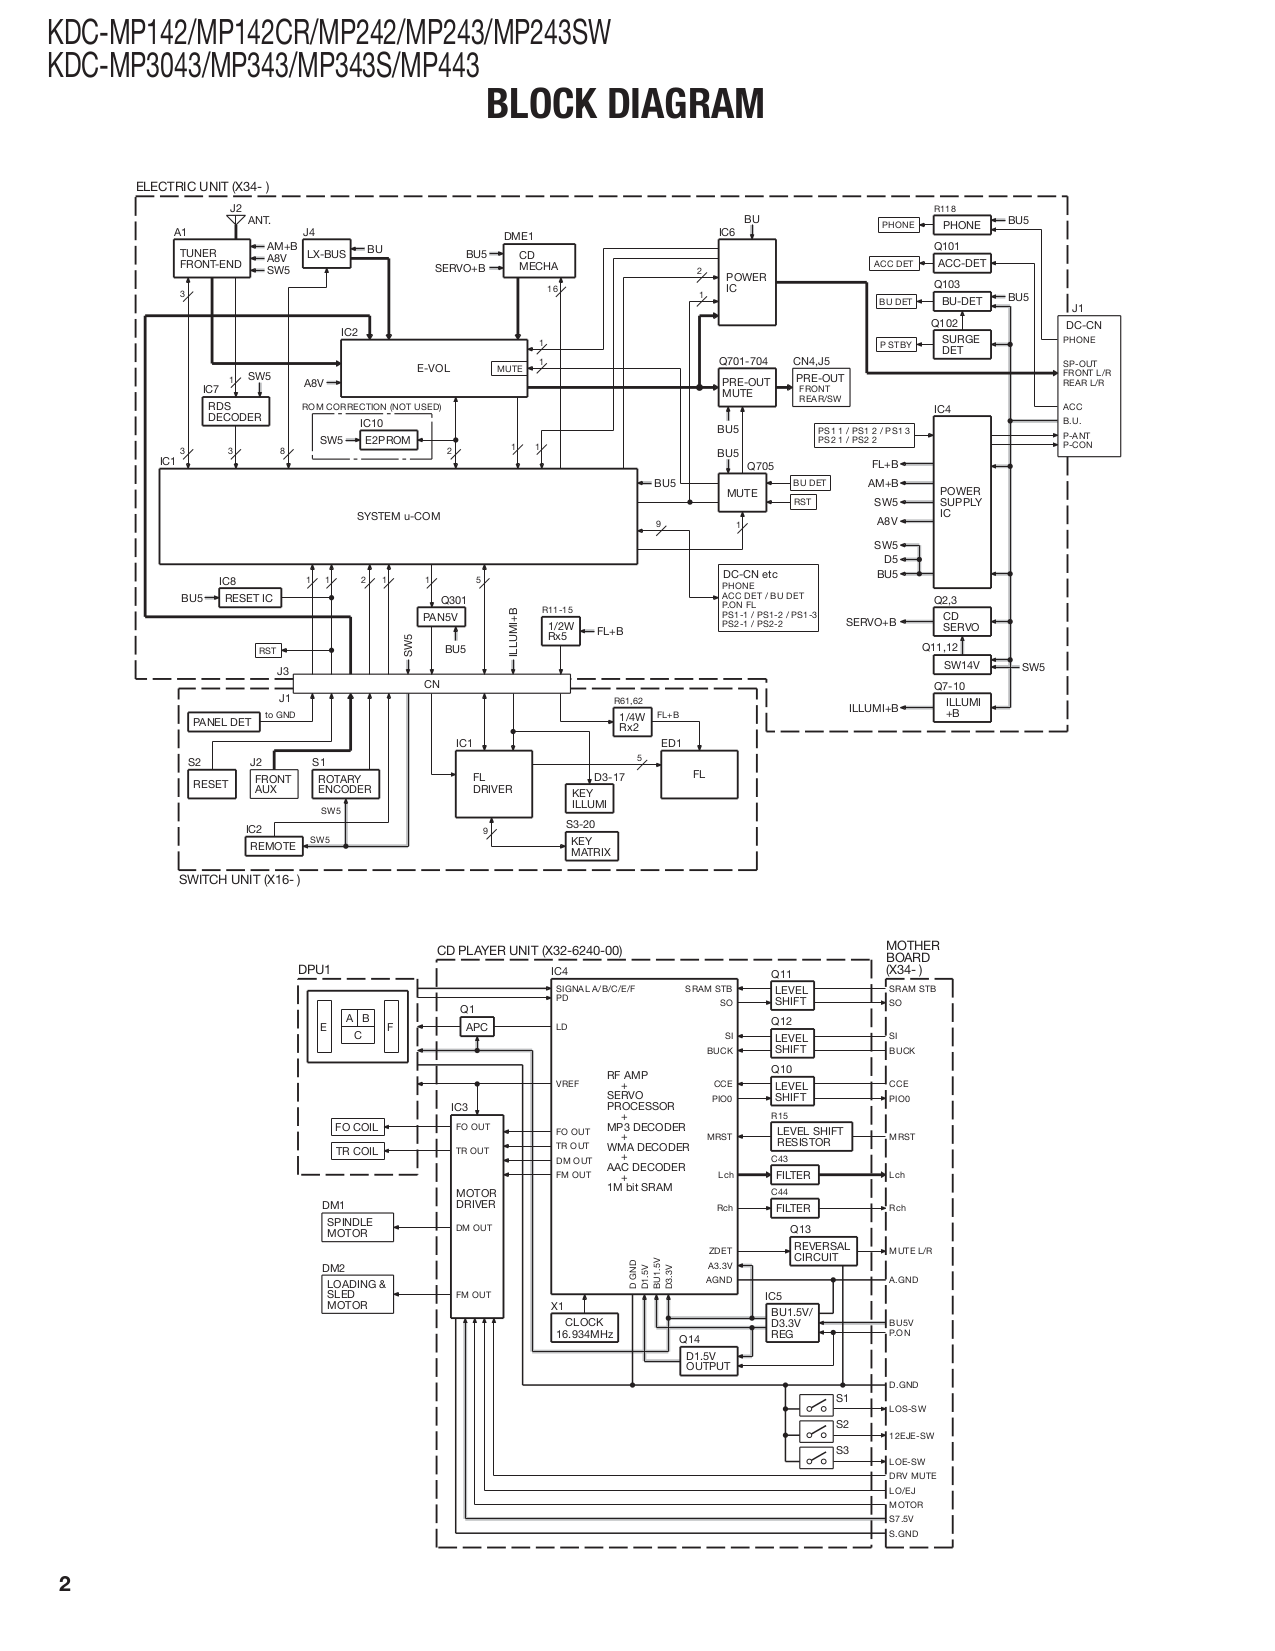 Kenwood Kdc Mp142 Manual Wiring Diagram Pdf For Car Receiver 322 Rh Umlib Com Model Sleeve